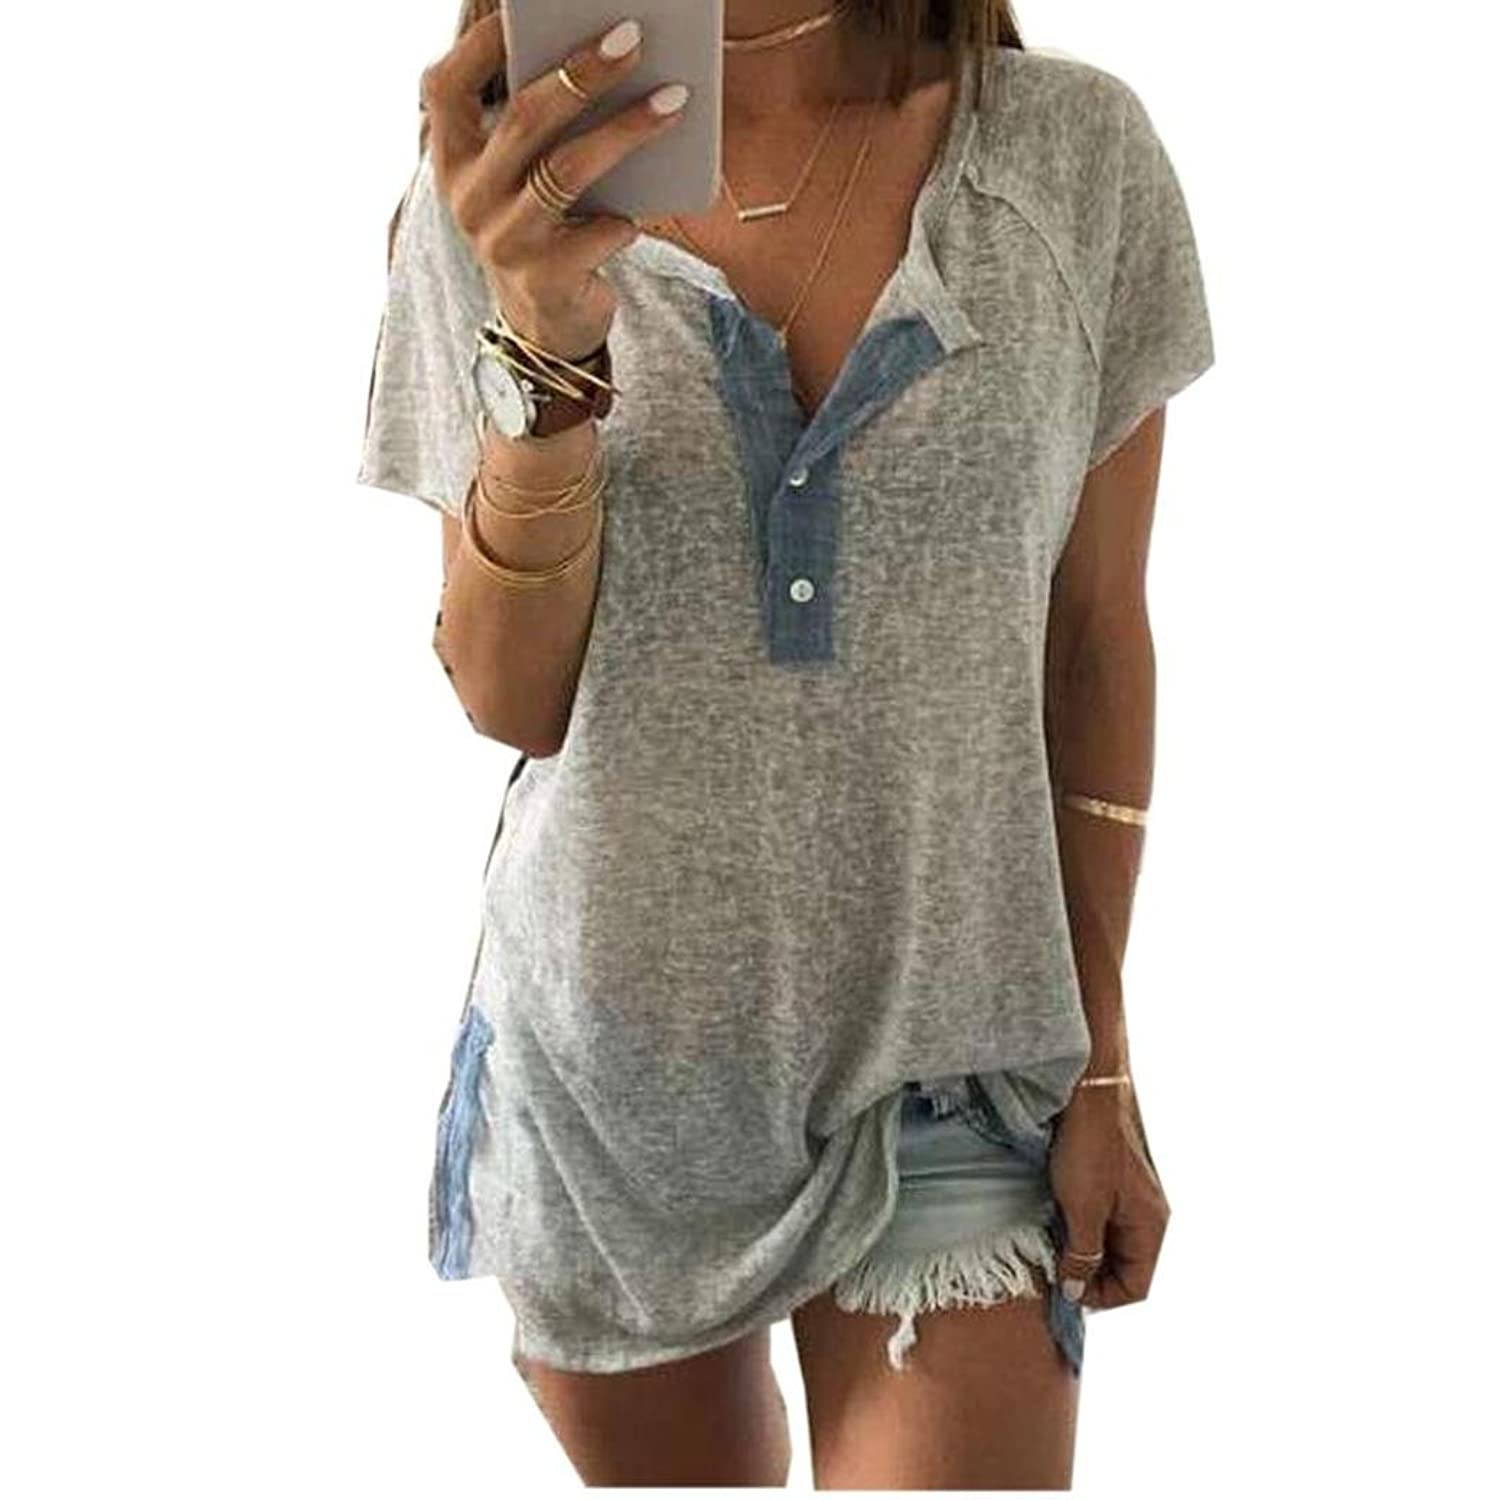 Cheap Sale 2019 New Spring Women Shirts Full Sleeve O-neck Japanese Dolls Cute Girl Blouse Shirt White Light Grey 1024 Women's Clothing